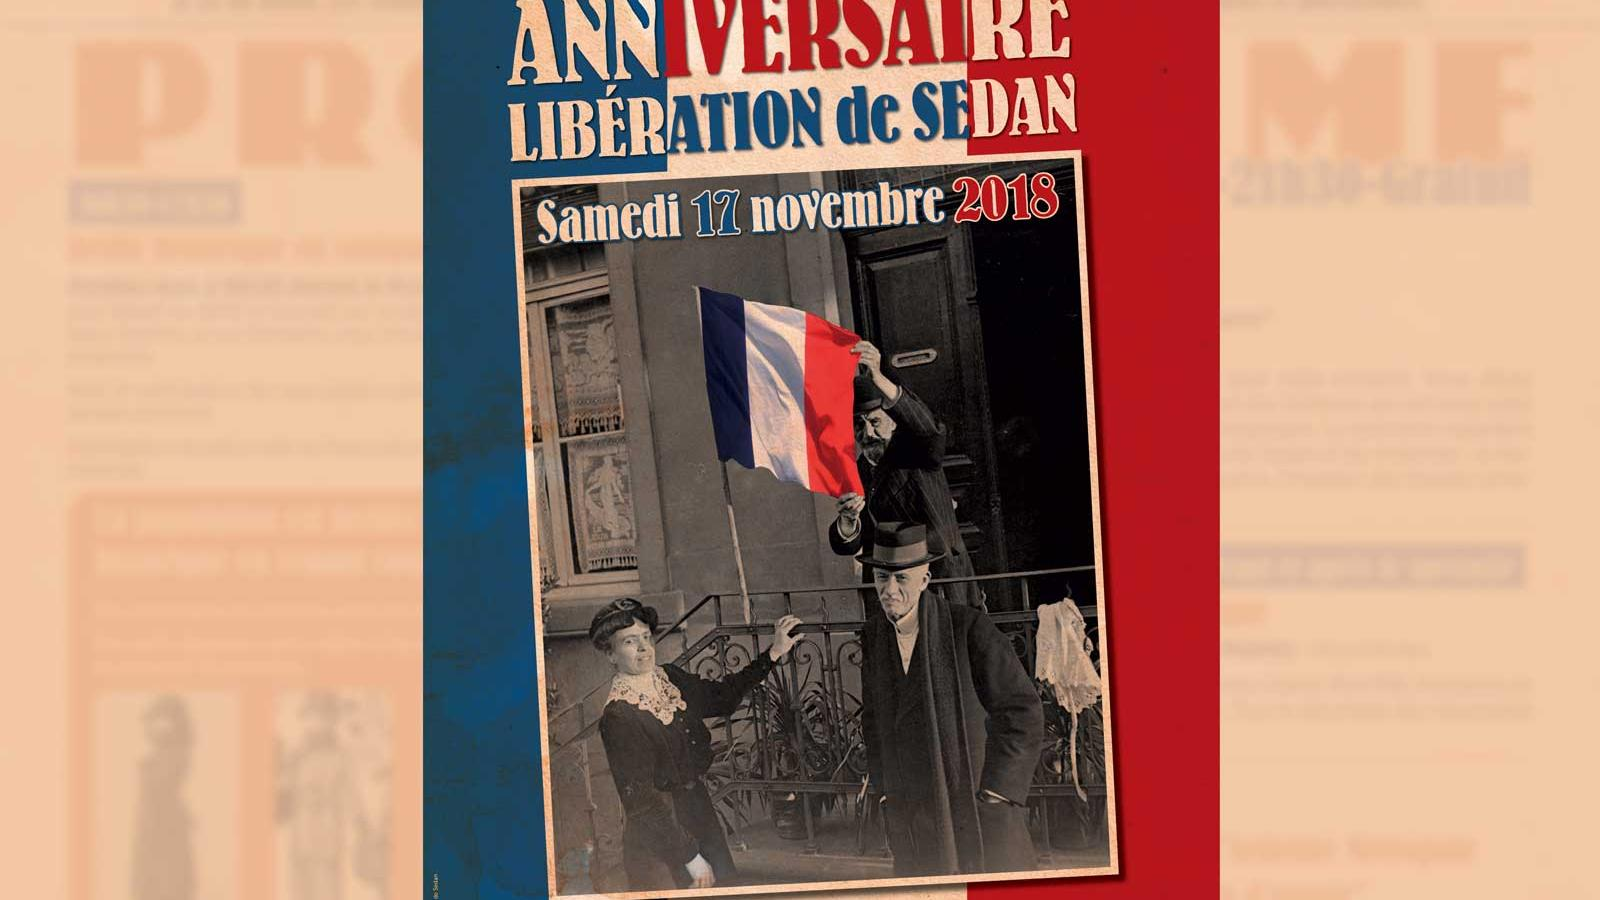 Programme commémoration armistice Sedan 17 novembre 2018